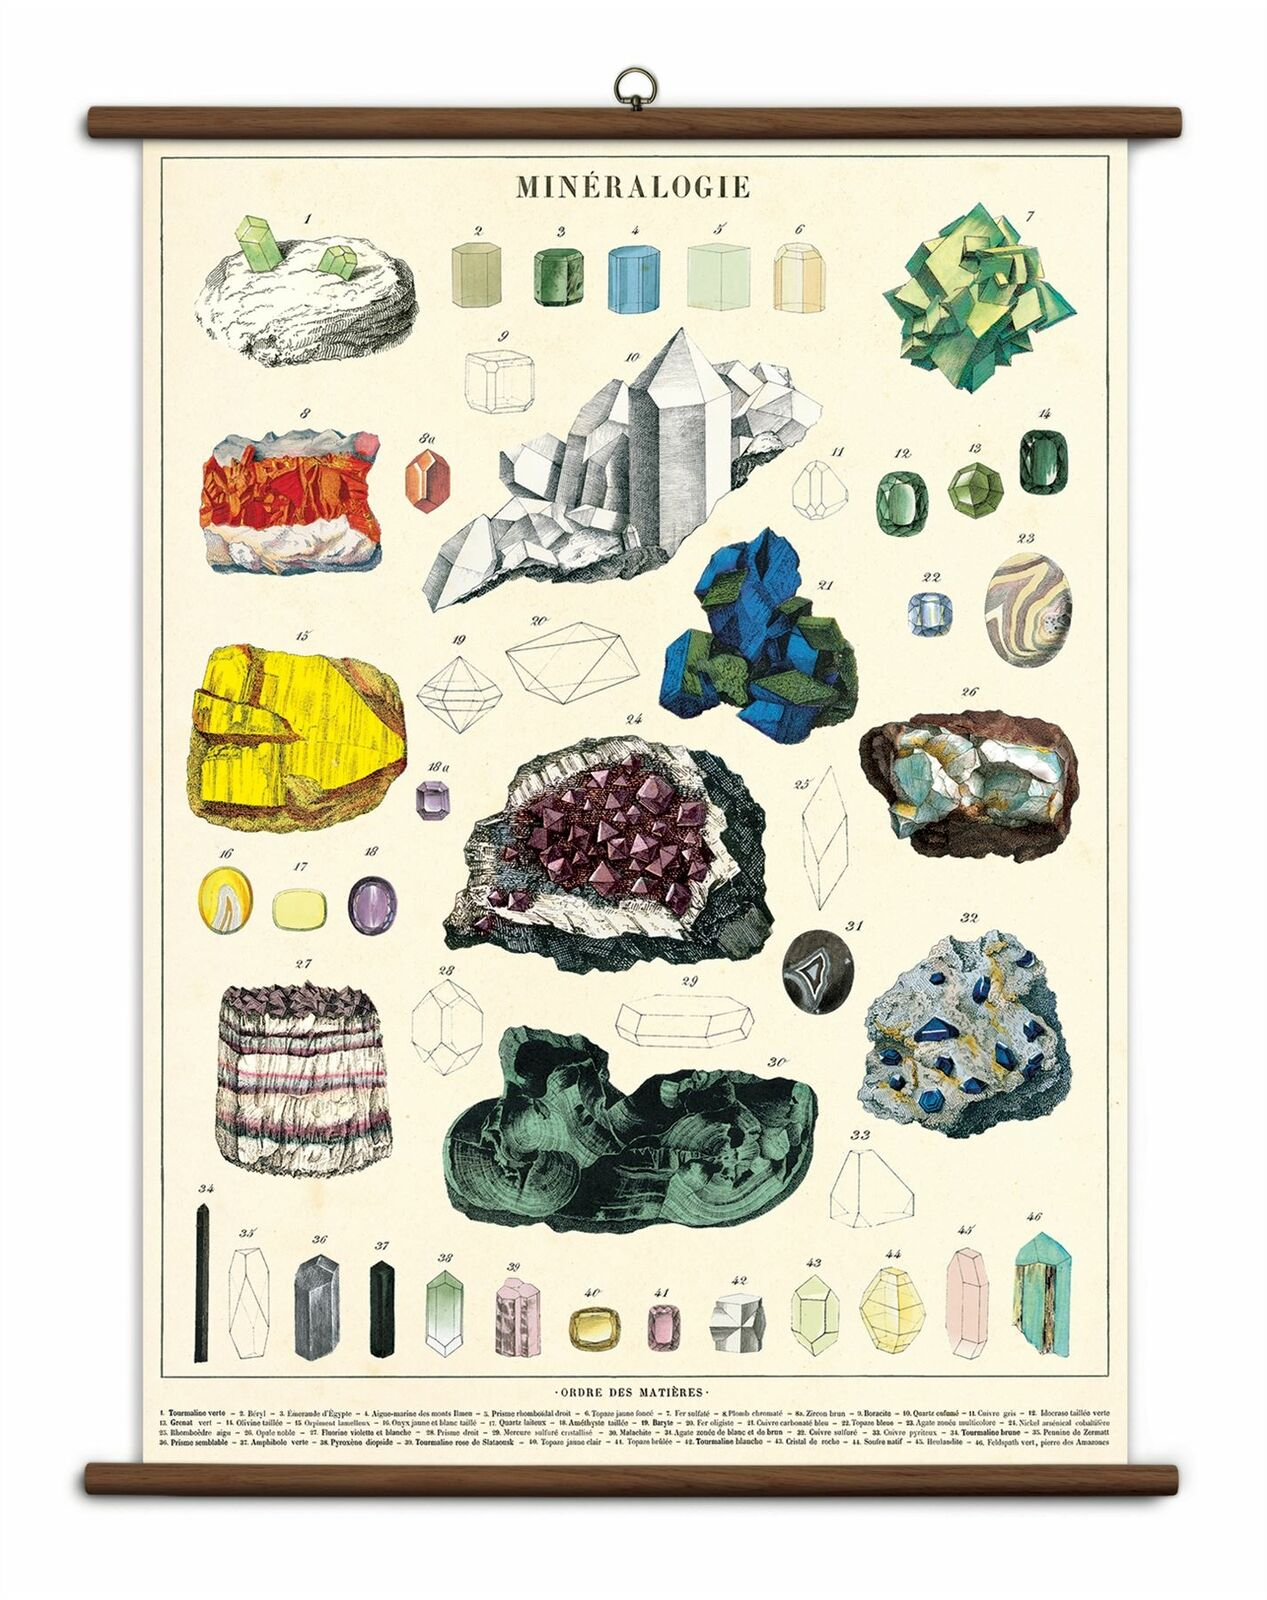 Mineralogy Wall-Hanging School Chart *FOR PORCH PICK-UP ONLY* UNABLE TO SHIP